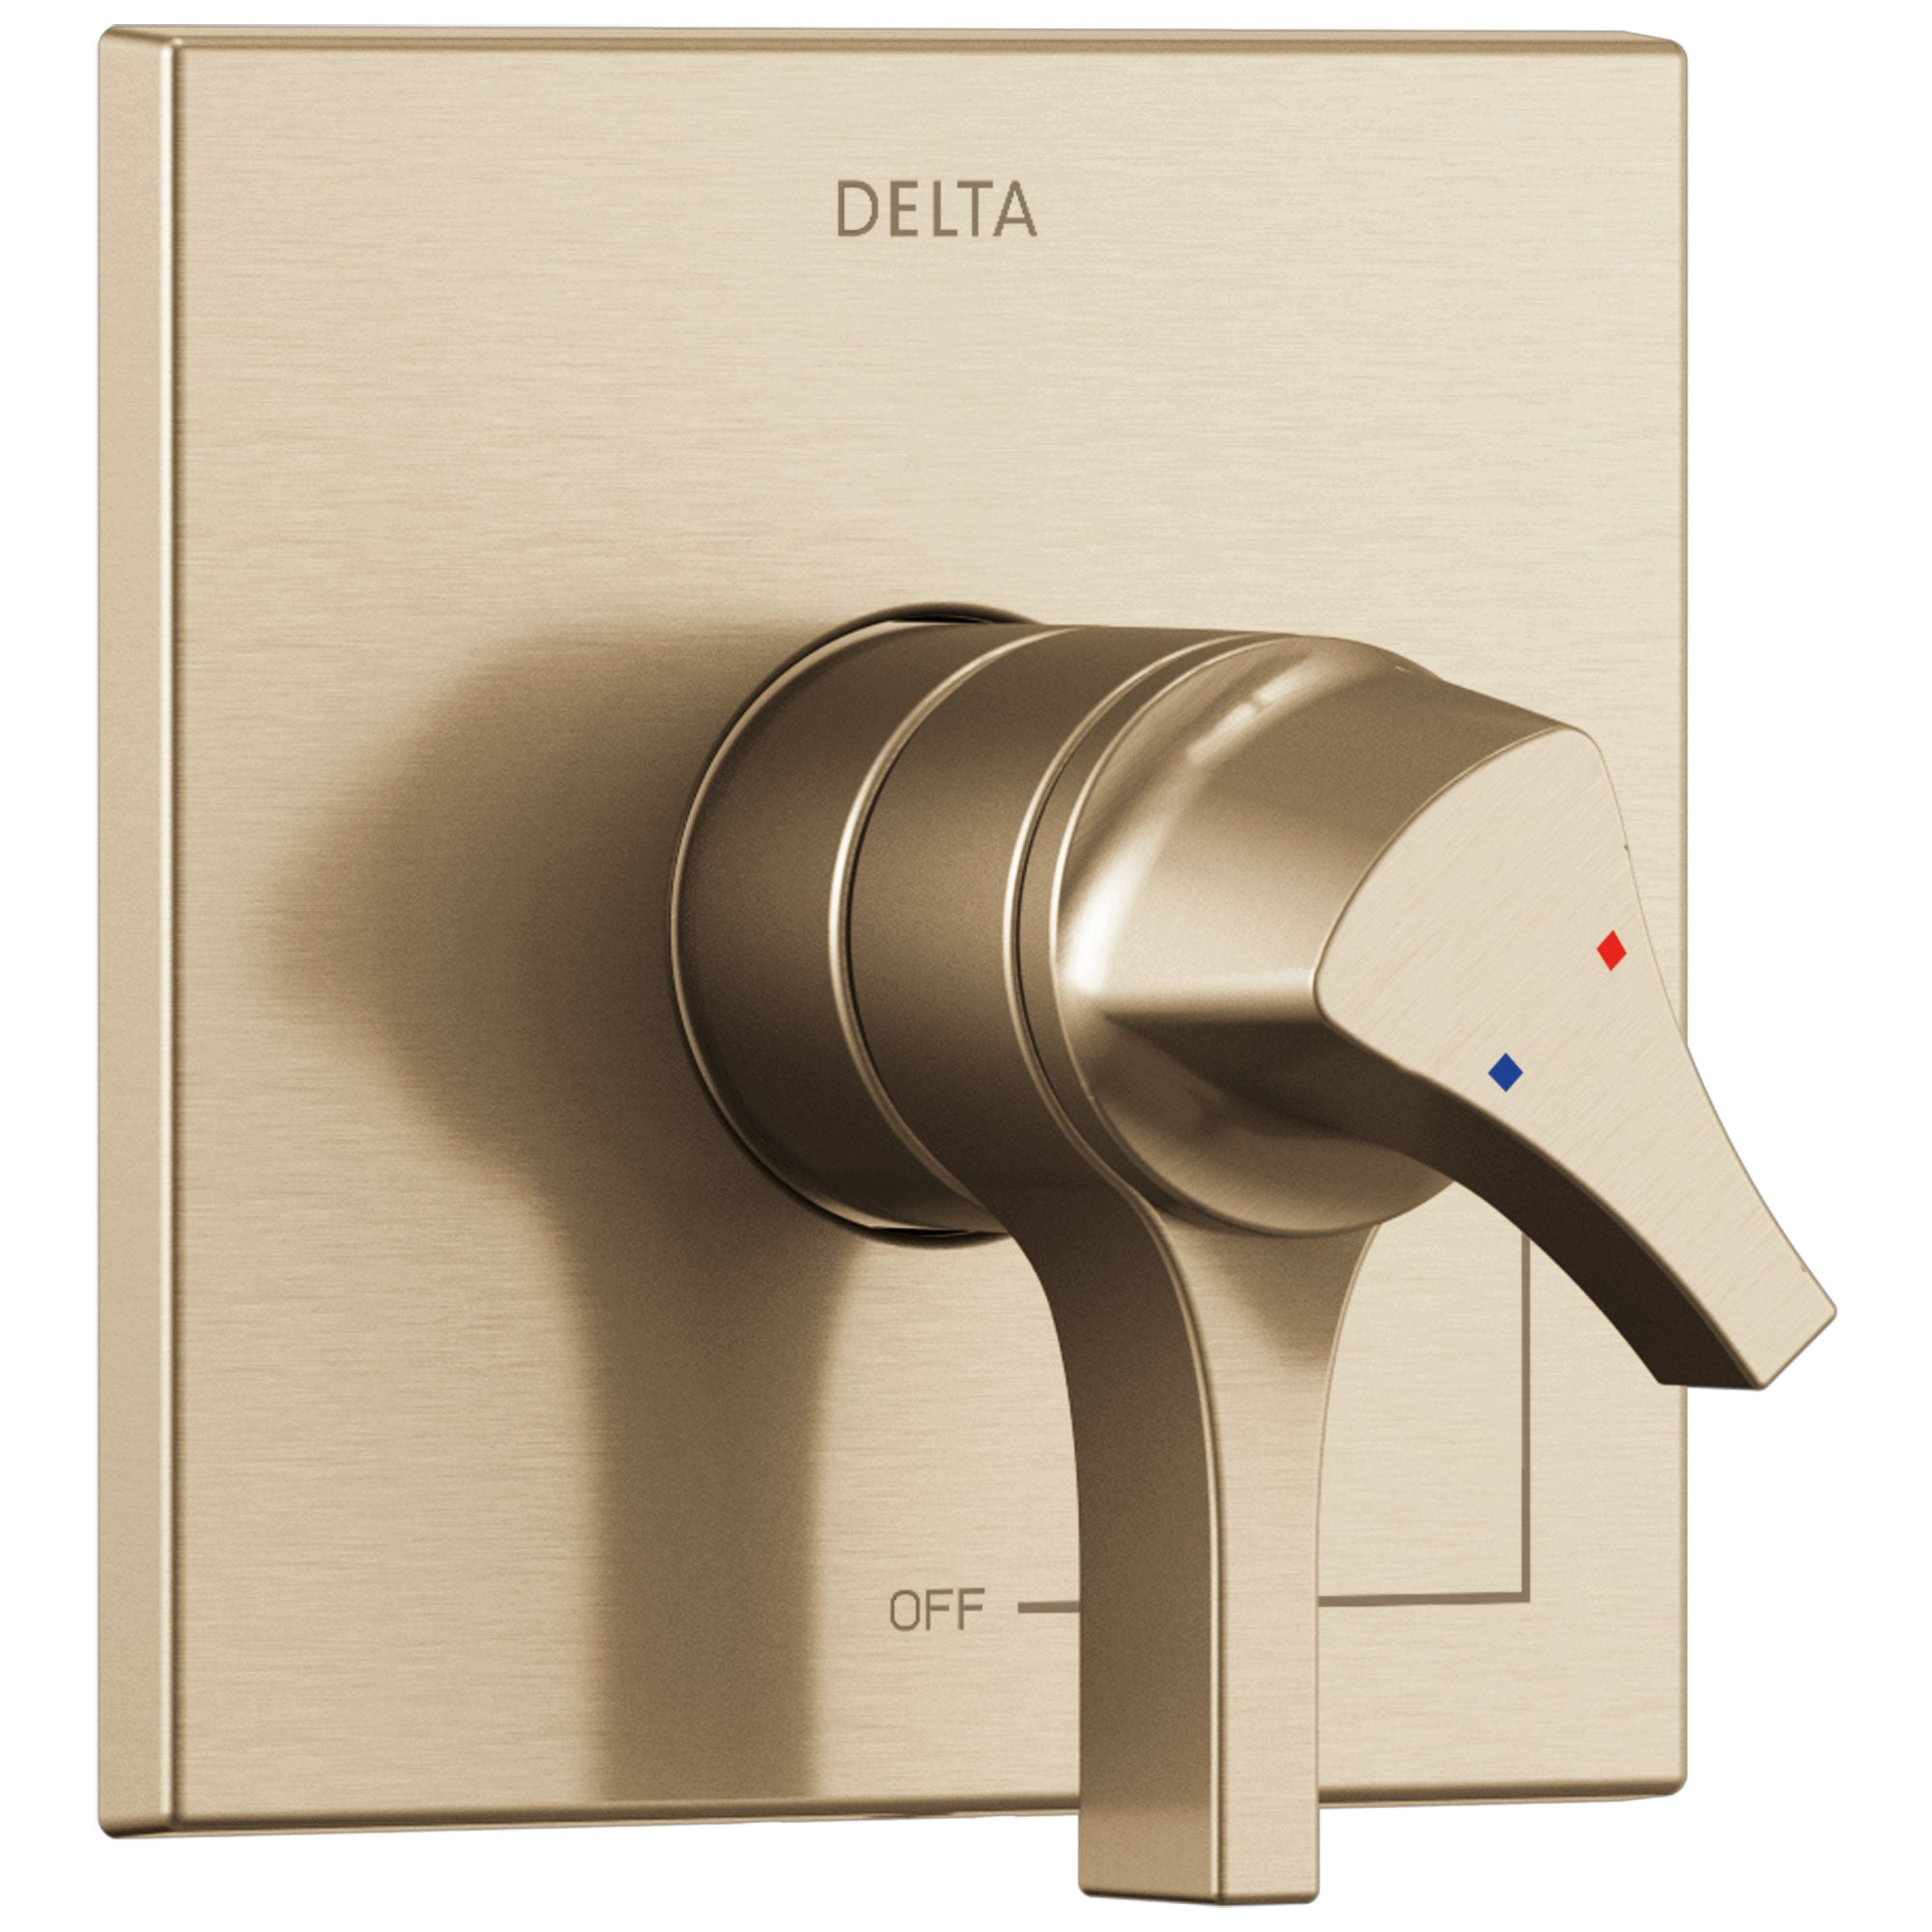 Delta Zura Champagne Bronze Finish Monitor 17 Series Shower Faucet Control Only Includes Cartridge, Handles, and Valve with Stops D3408V